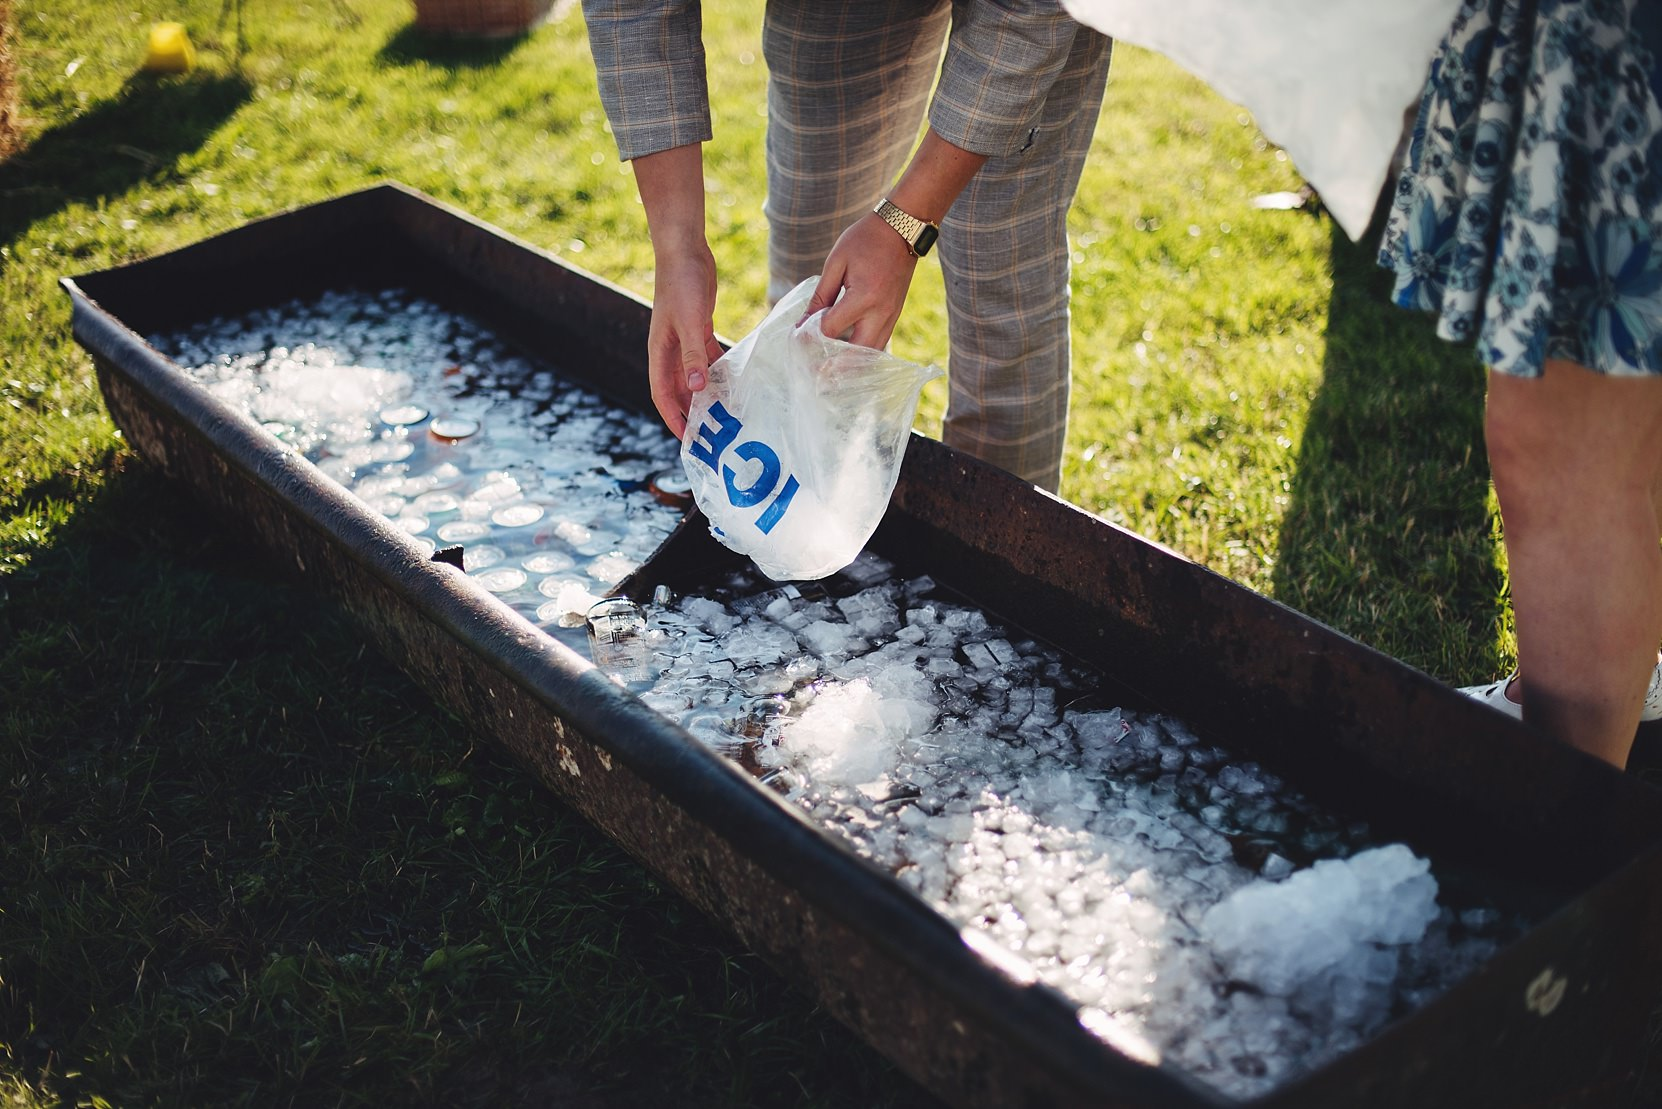 Filling a trough full of Ice for beers at a wedding